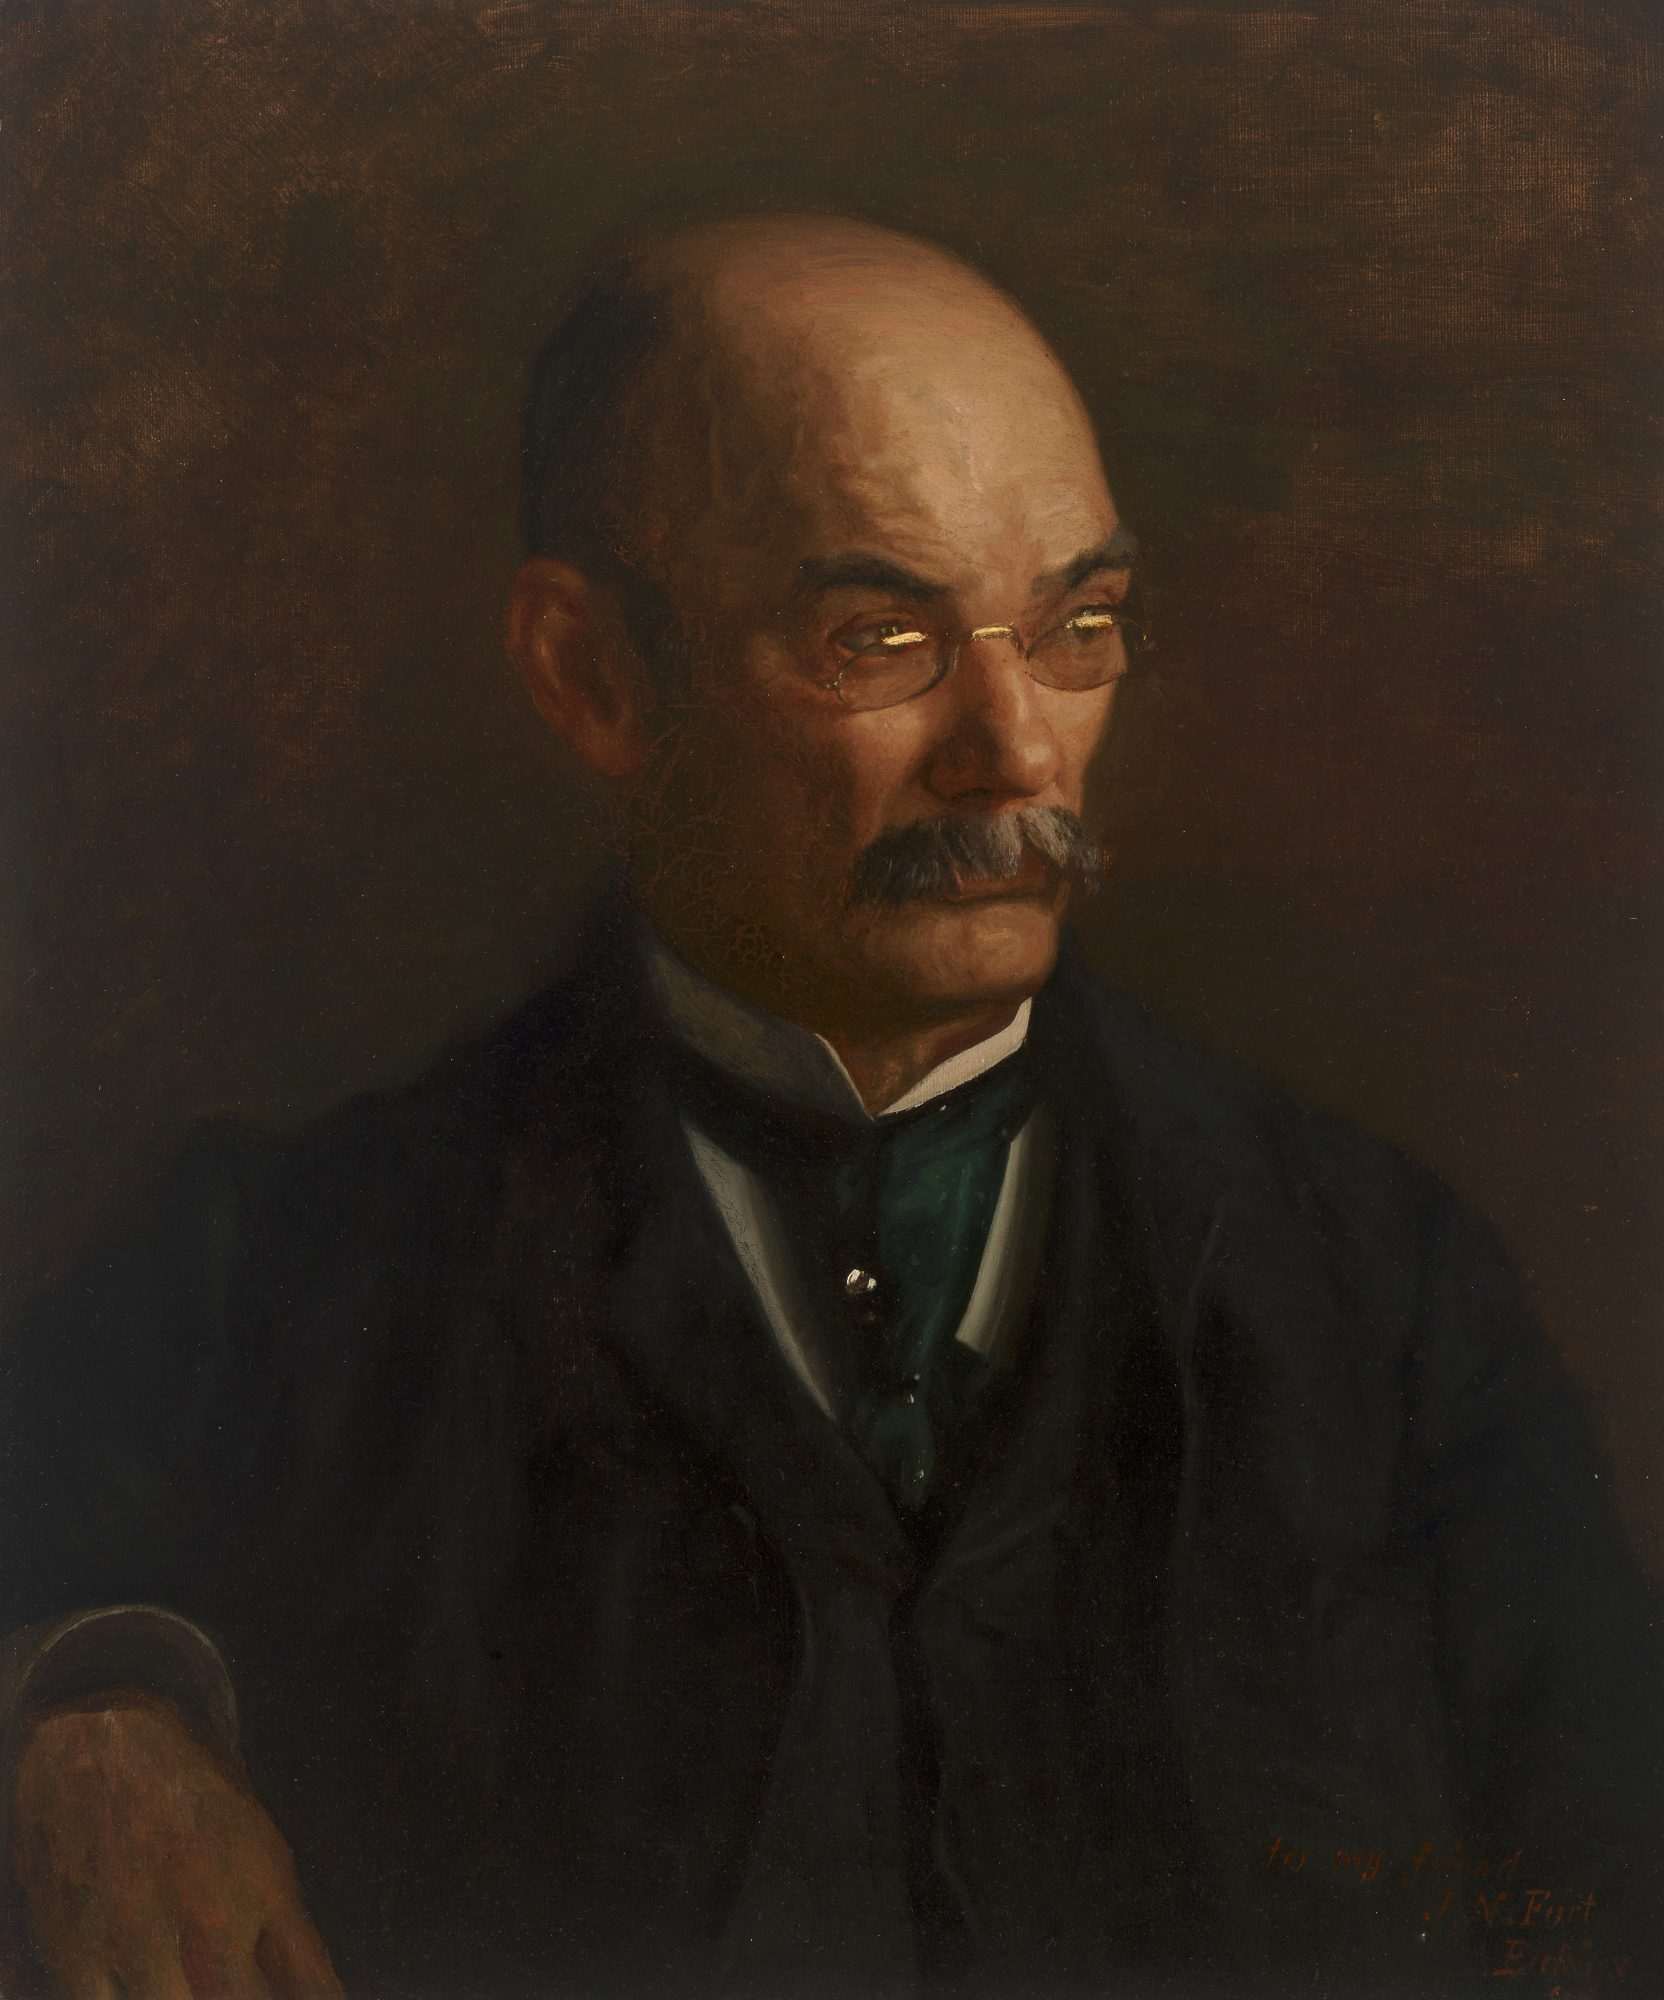 Thomas Eakins, (American, 1844-1916), Portrait of John Neil Fort, 1898. Oil on canvas, 24 x 20 1/16 in. Bequest of Lawrence H. Bloedel, Class of 1923, 77.9.115.